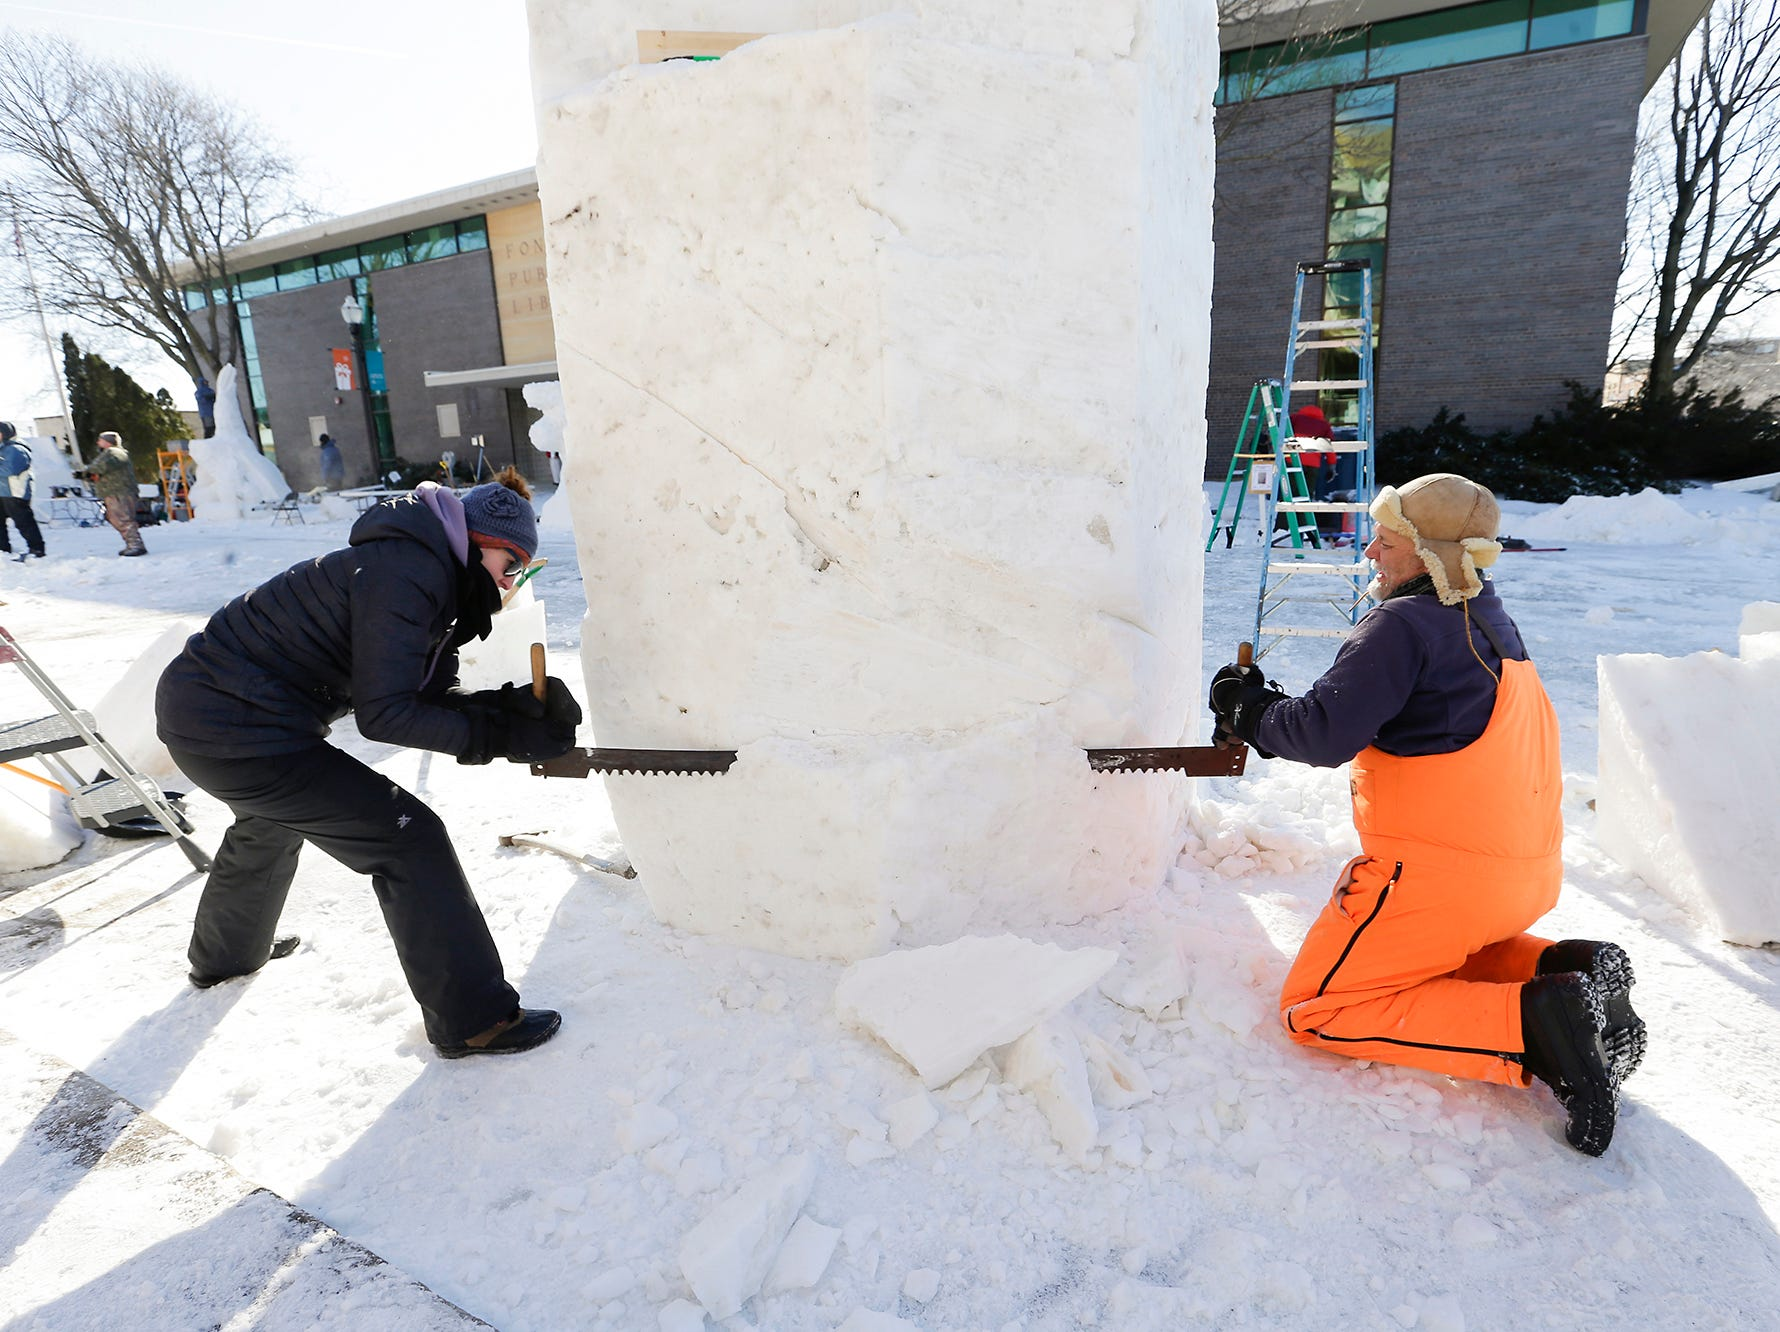 Kelly Norton of Fond du Lac and Rick Mergen of Baraboo work on a snow sculpture Saturday, February 9, 2019 in downtown Fond du Lac during Sturgeon Spectacular. Sturgeon Spectacular is a weeklong celebration of the lake sturgeon spearing season and includes events on and off the ice in the Fond du Lac area. Doug Raflik/USA TODAY NETWORK-Wisconsin